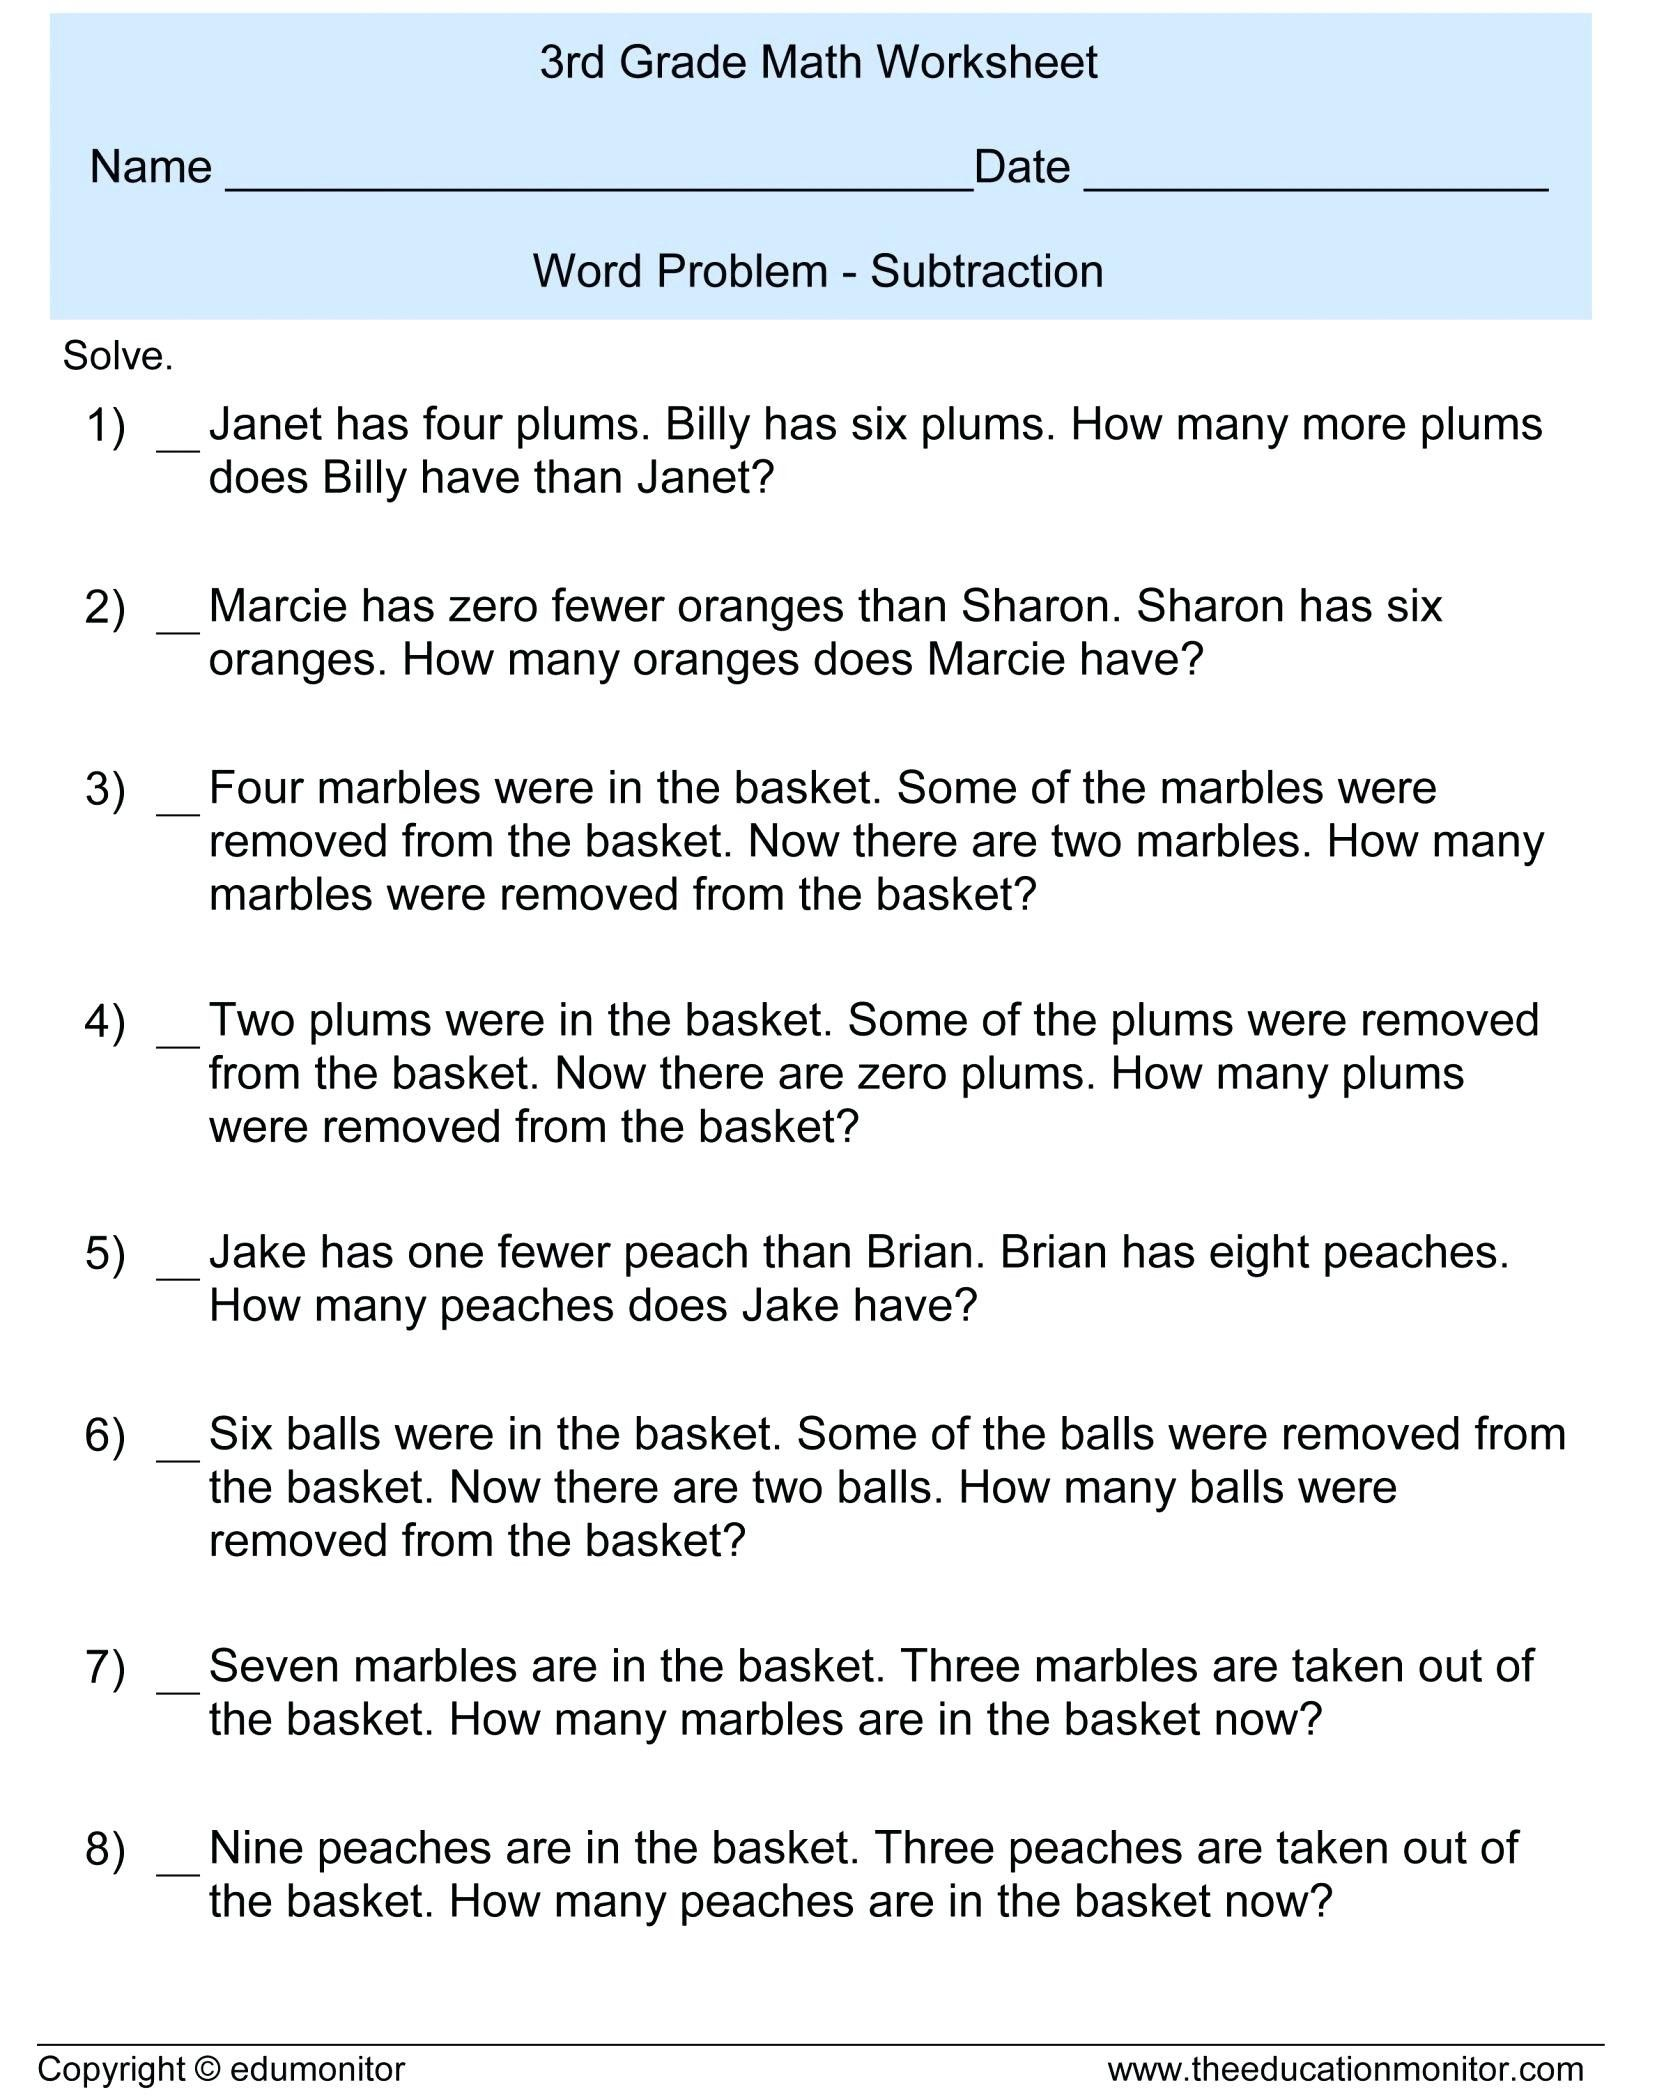 hight resolution of Third Grade Math Word Problems Worksheets   Printable Worksheets and  Activities for Teachers